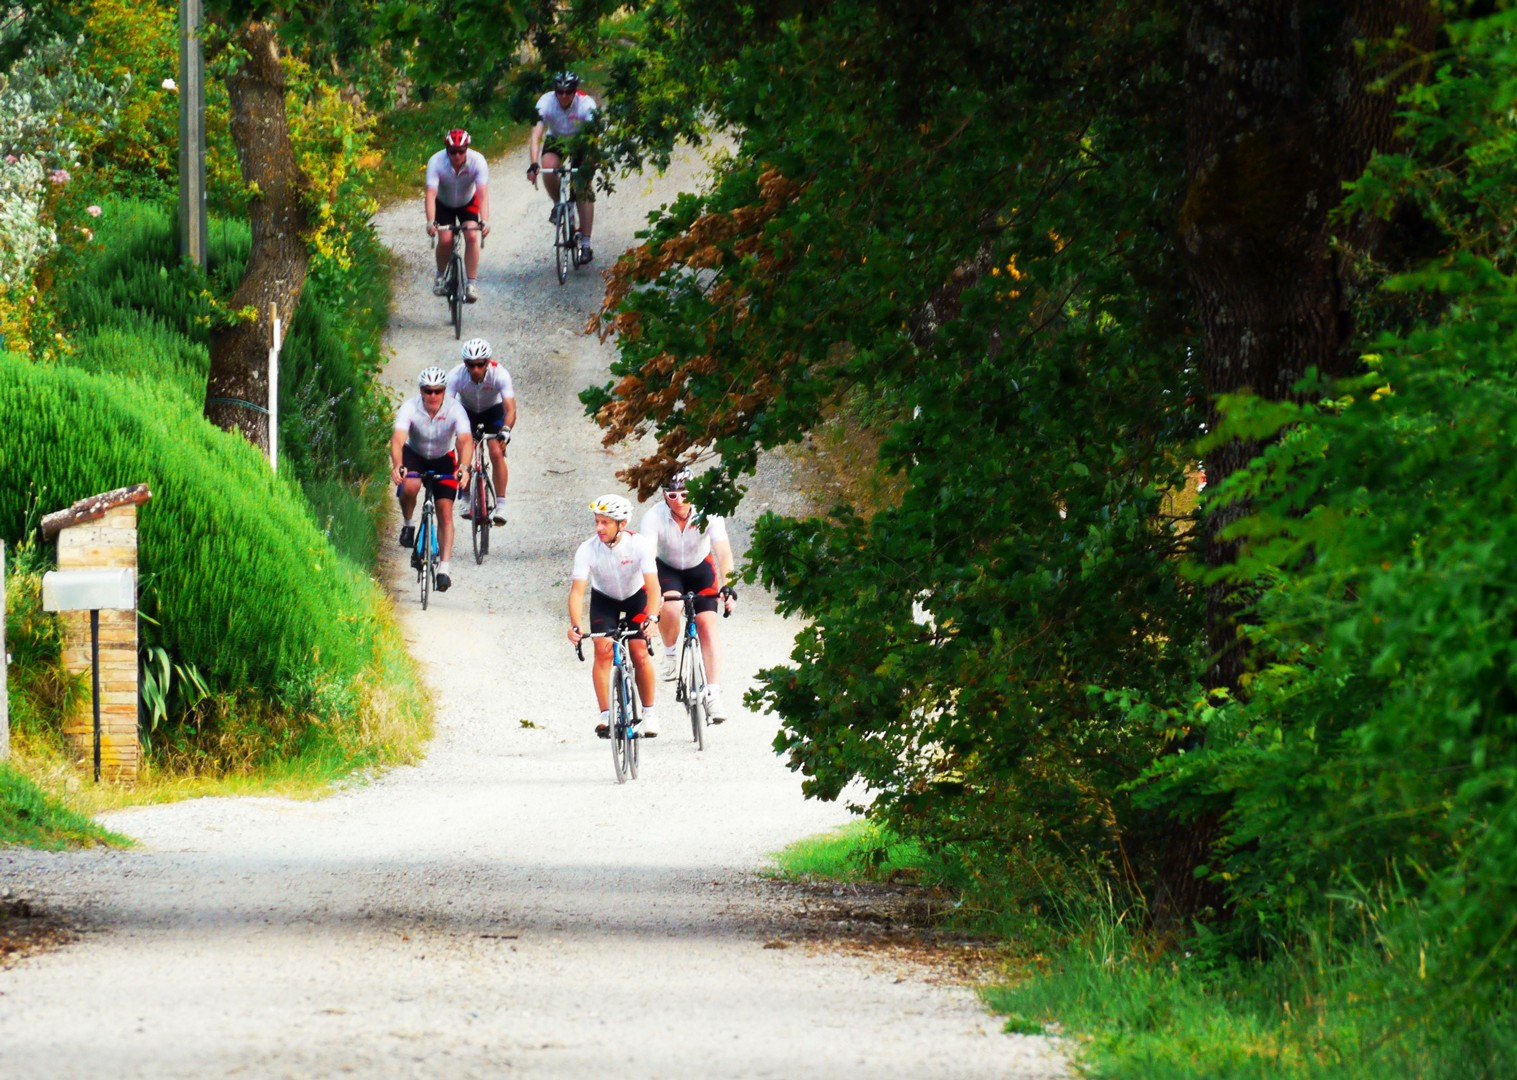 group-guided-cycling-white-roads-italy-tuscany.jpg - Italy - Tuscany Tourer - Guided Road Cycling Holiday - Road Cycling